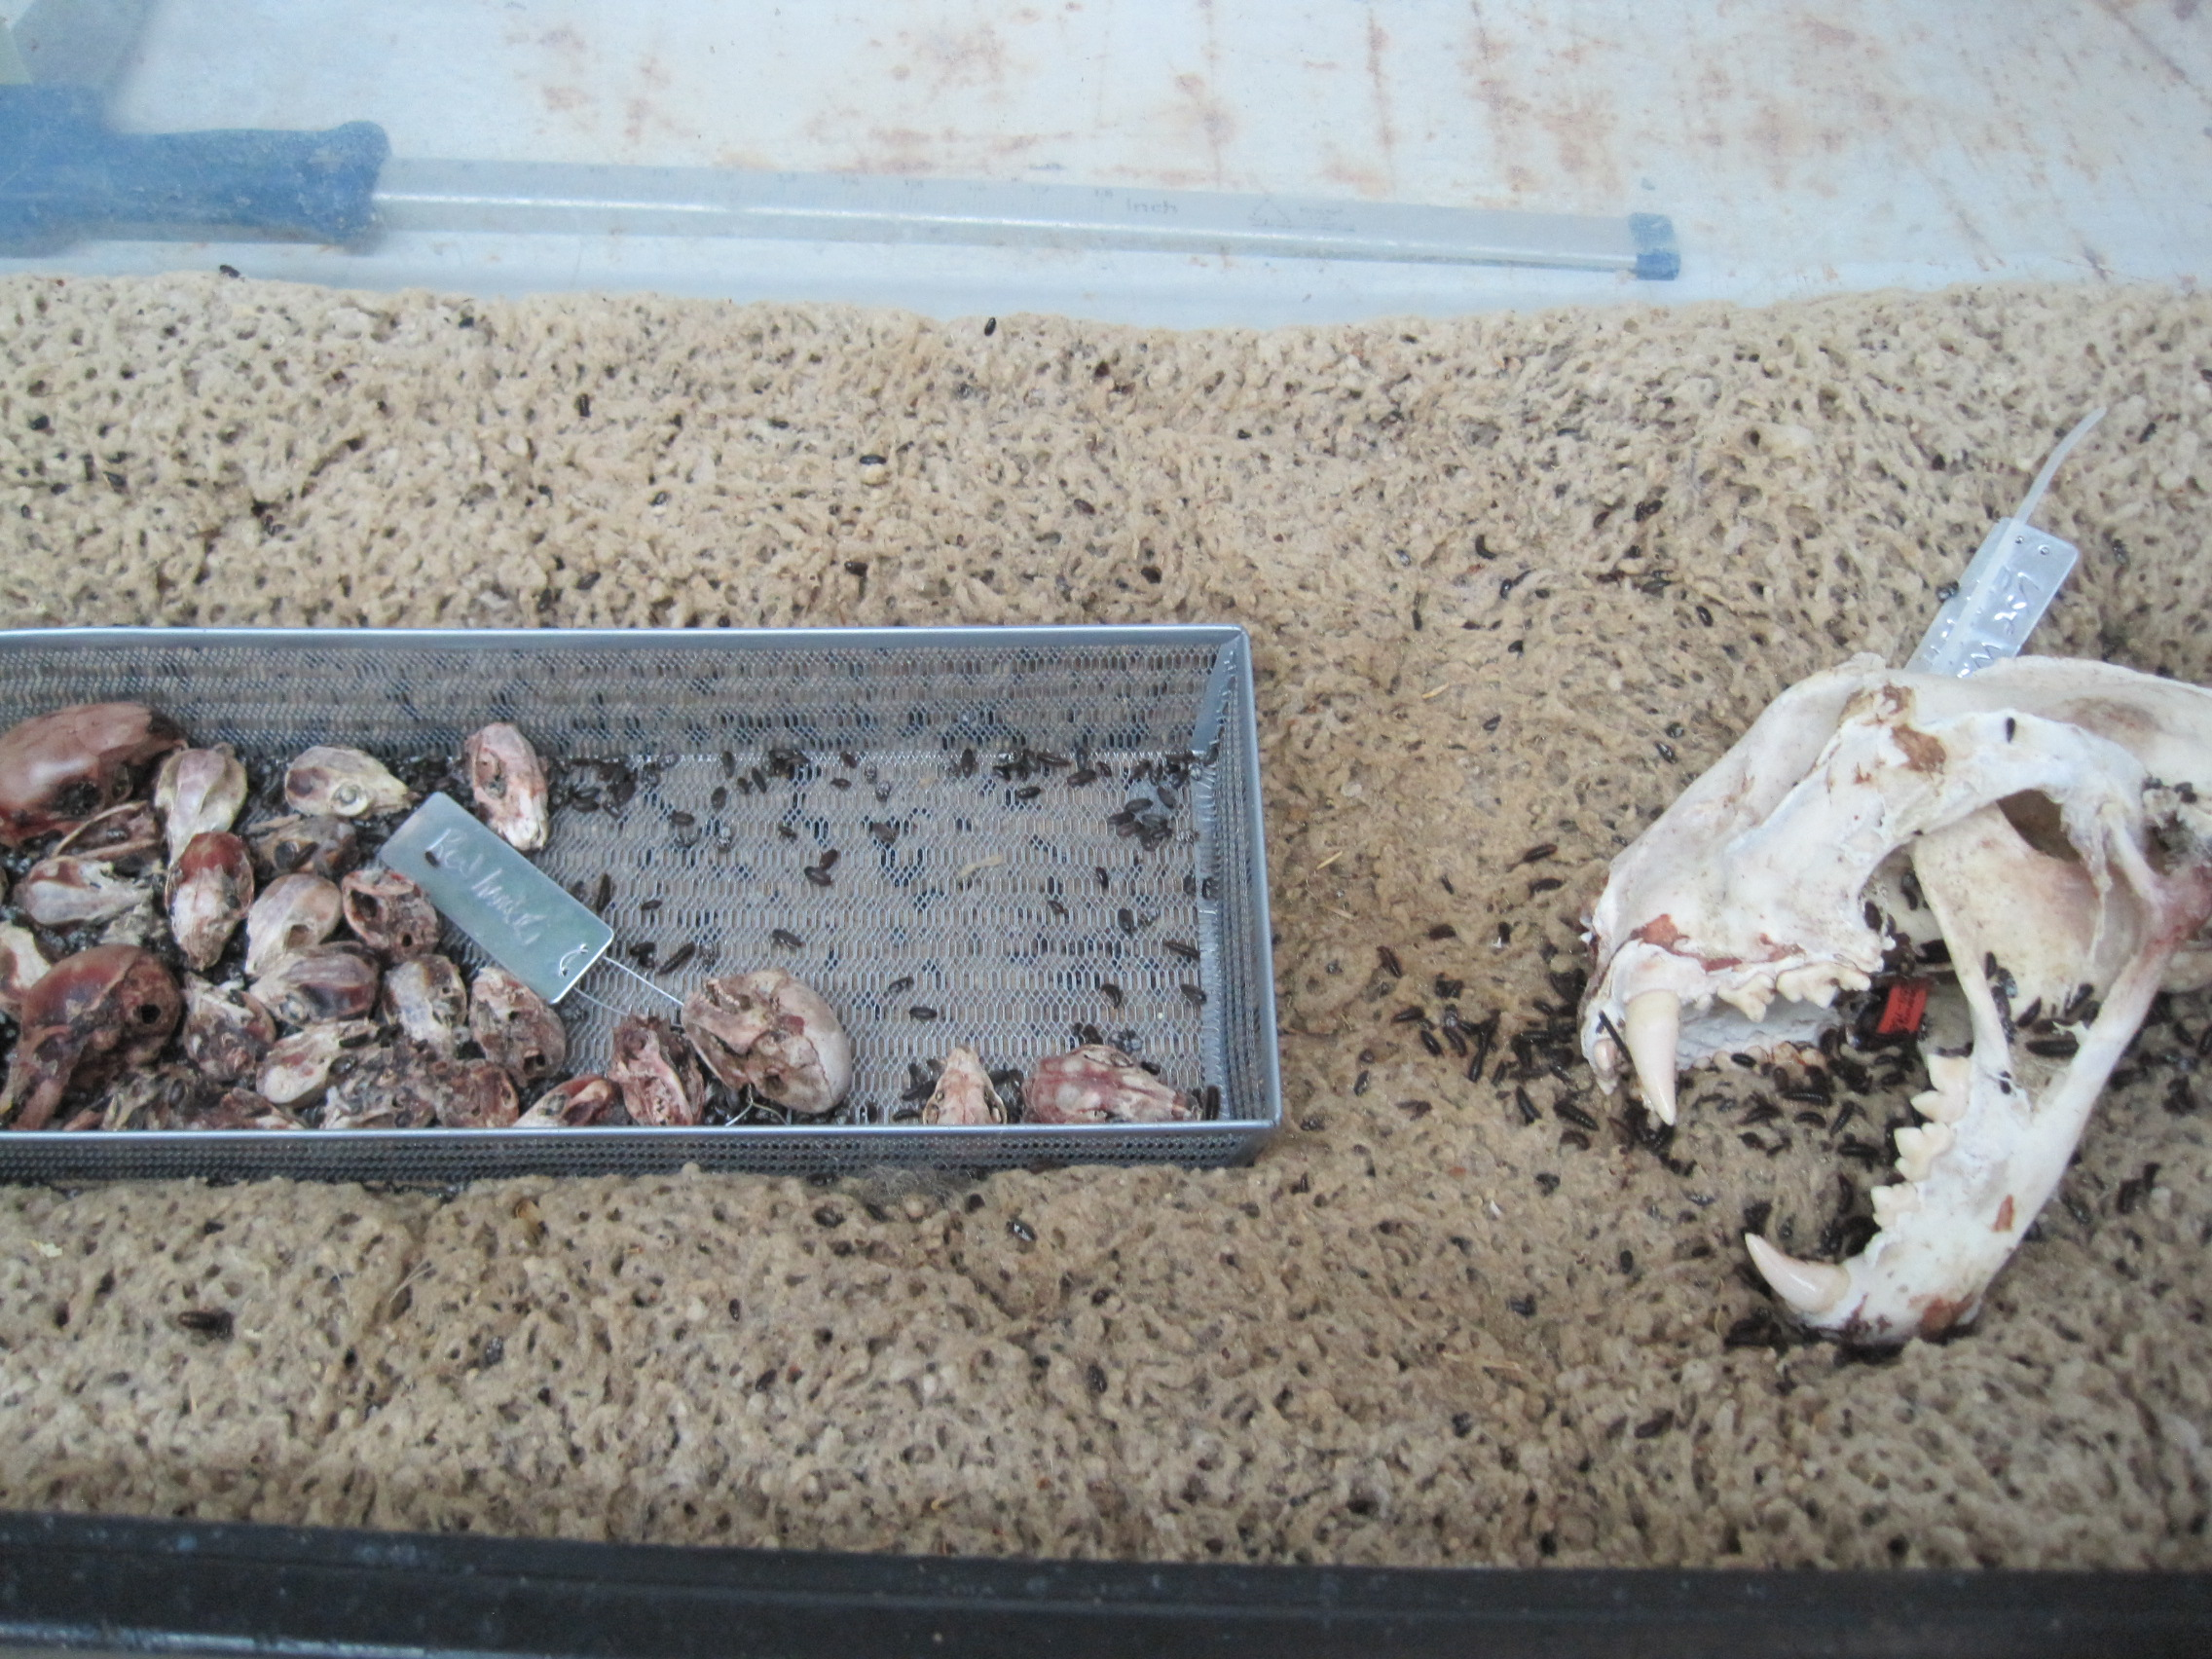 Image by JimJones1971.  In this picture, dermestid beetles are cleaning many skulls at once.